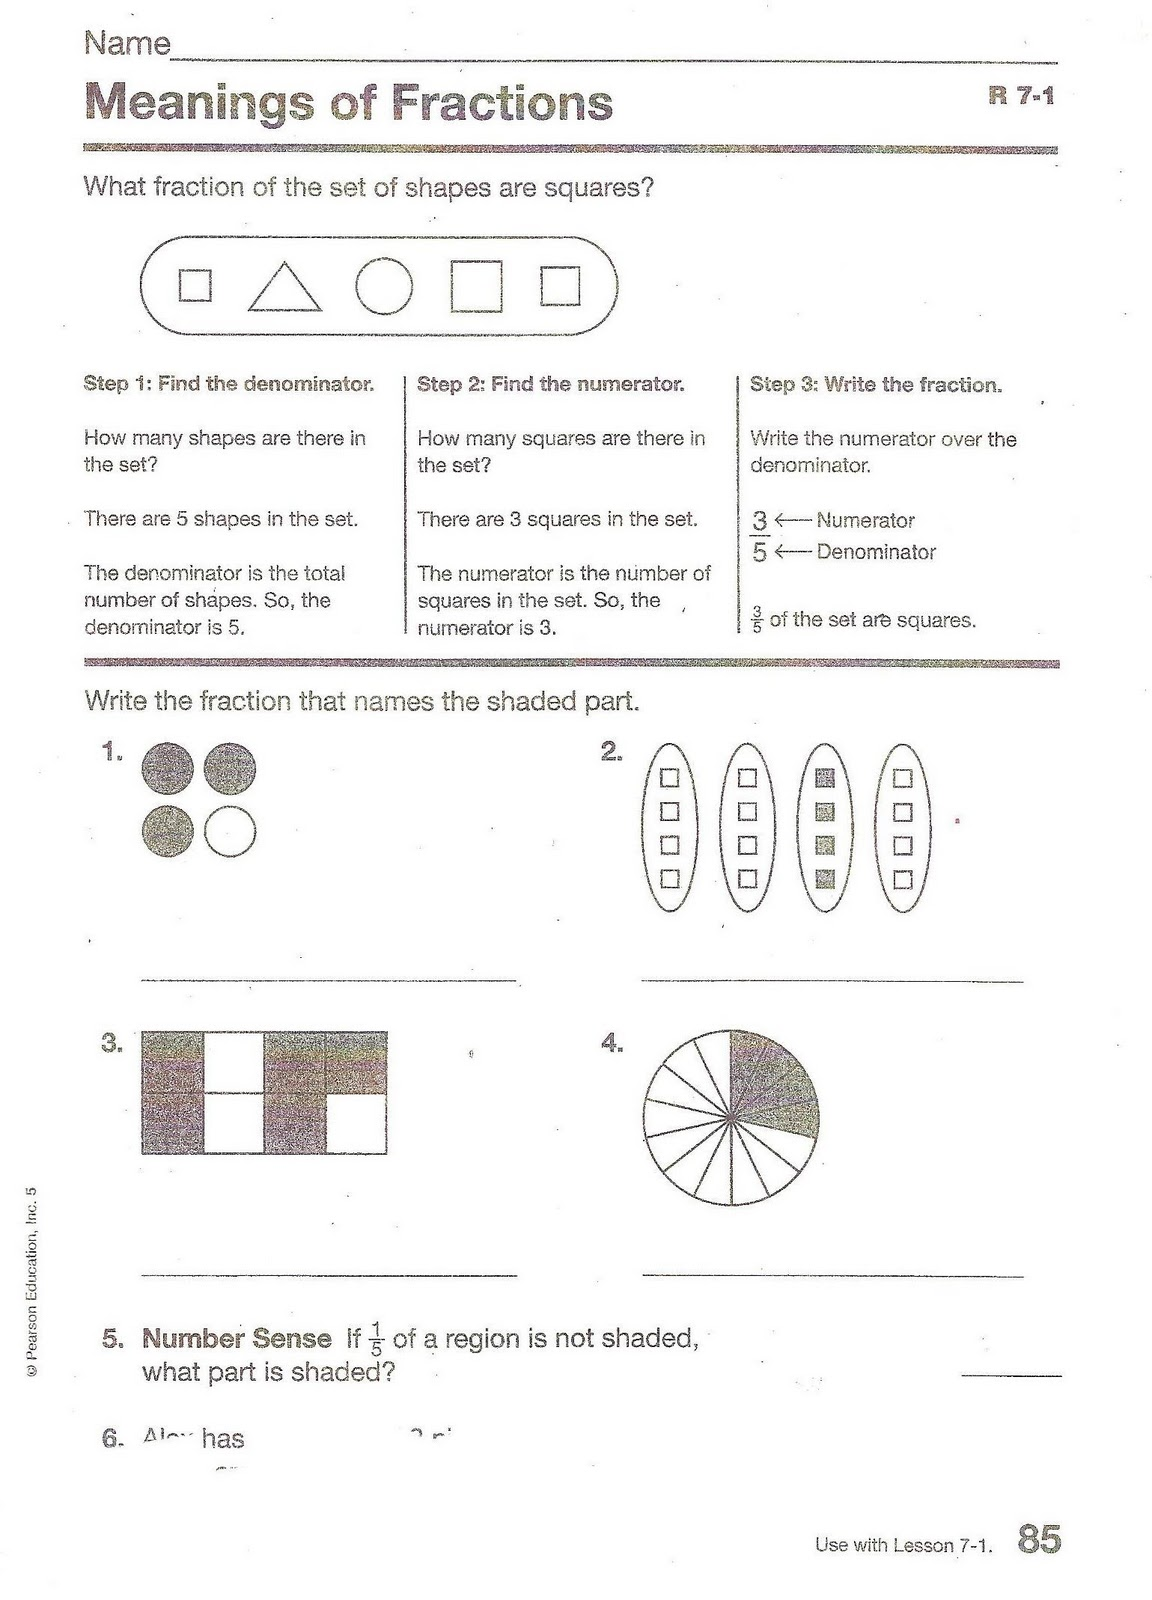 5th Grade At Sage Hills 7 1 Math Homework The Meaning Of